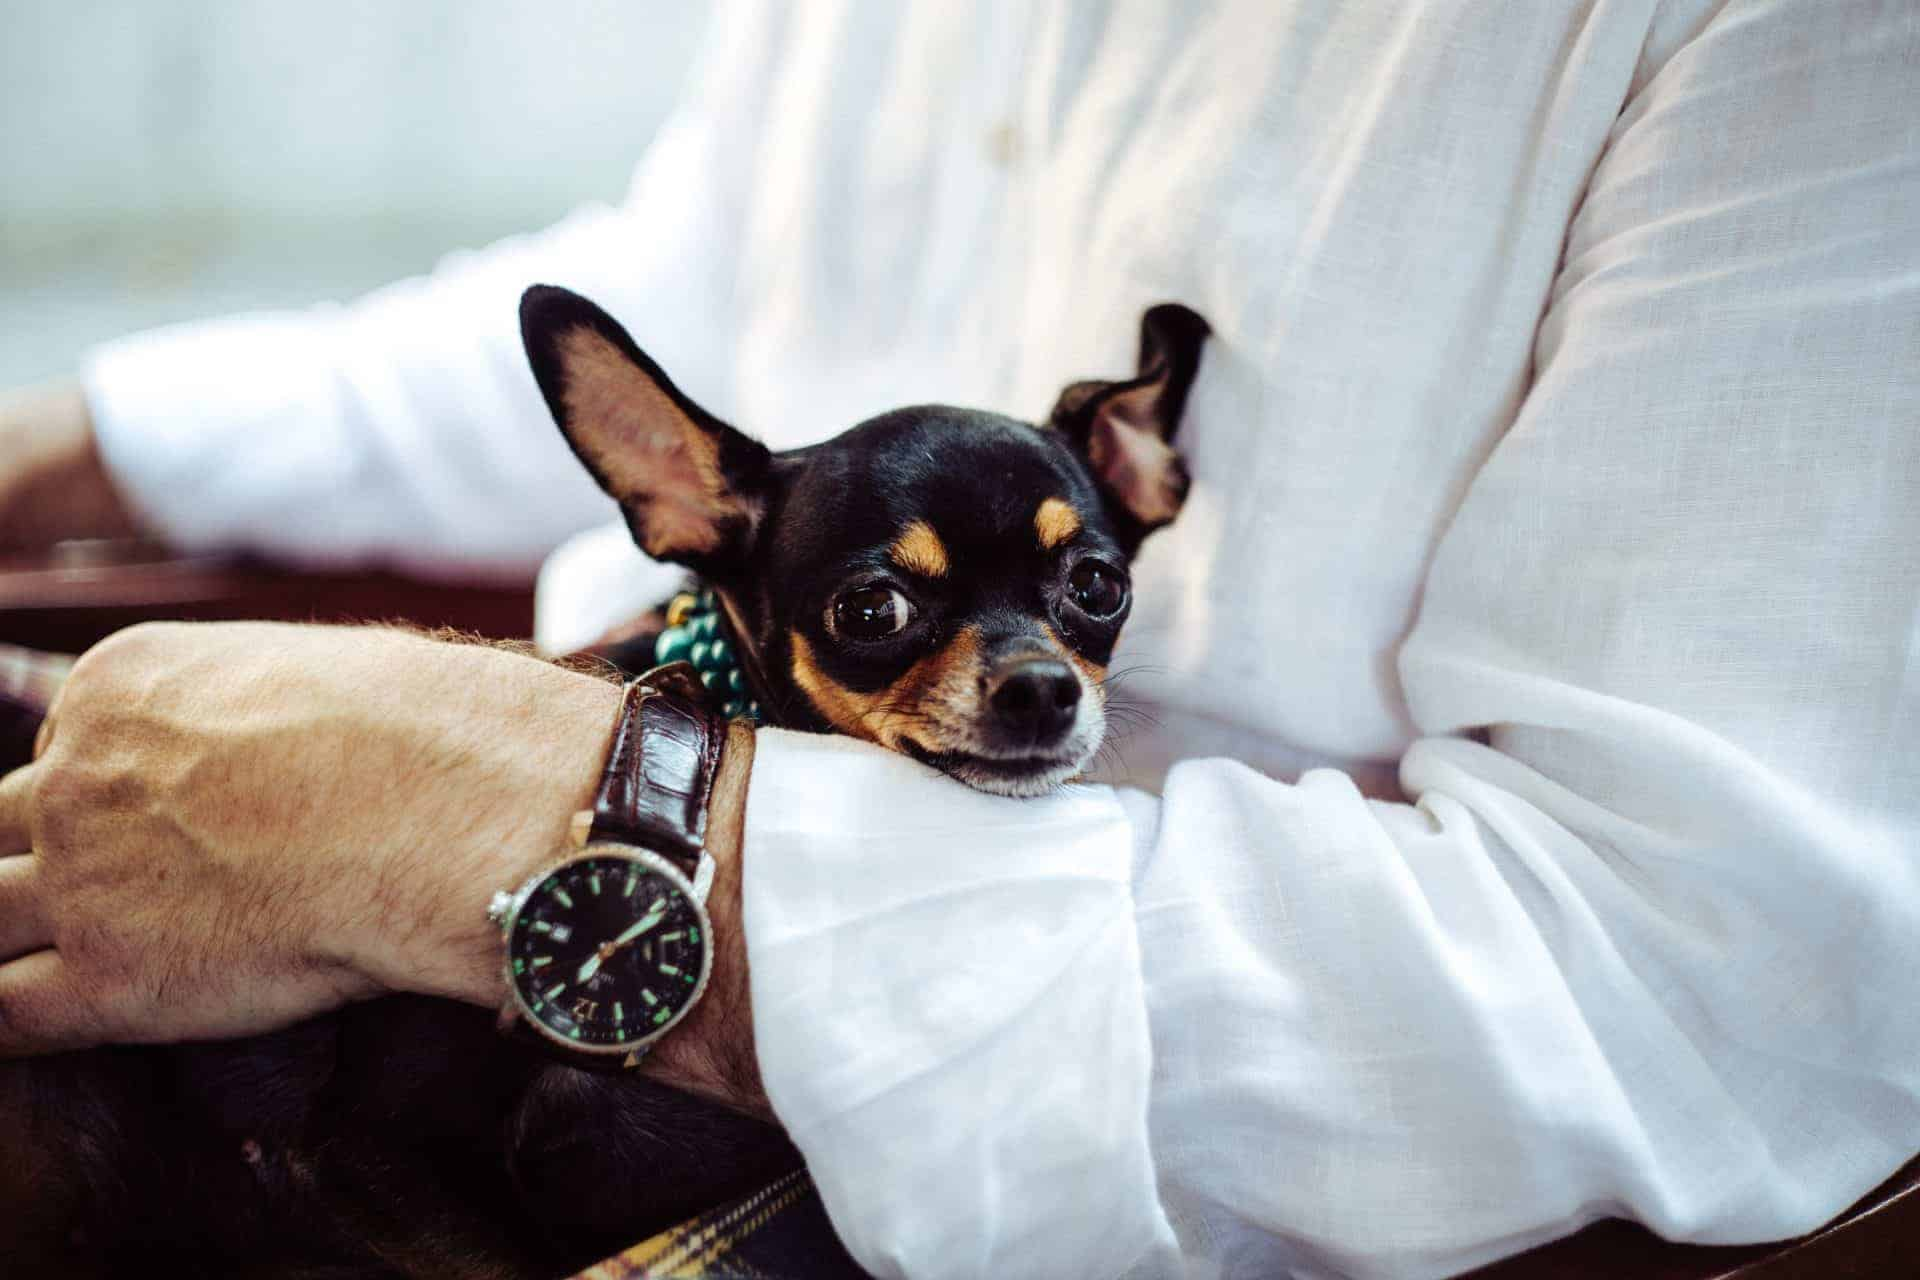 Small black and tan chihuahua dog in man's arms with a white long sleeve shirt wearing a watch